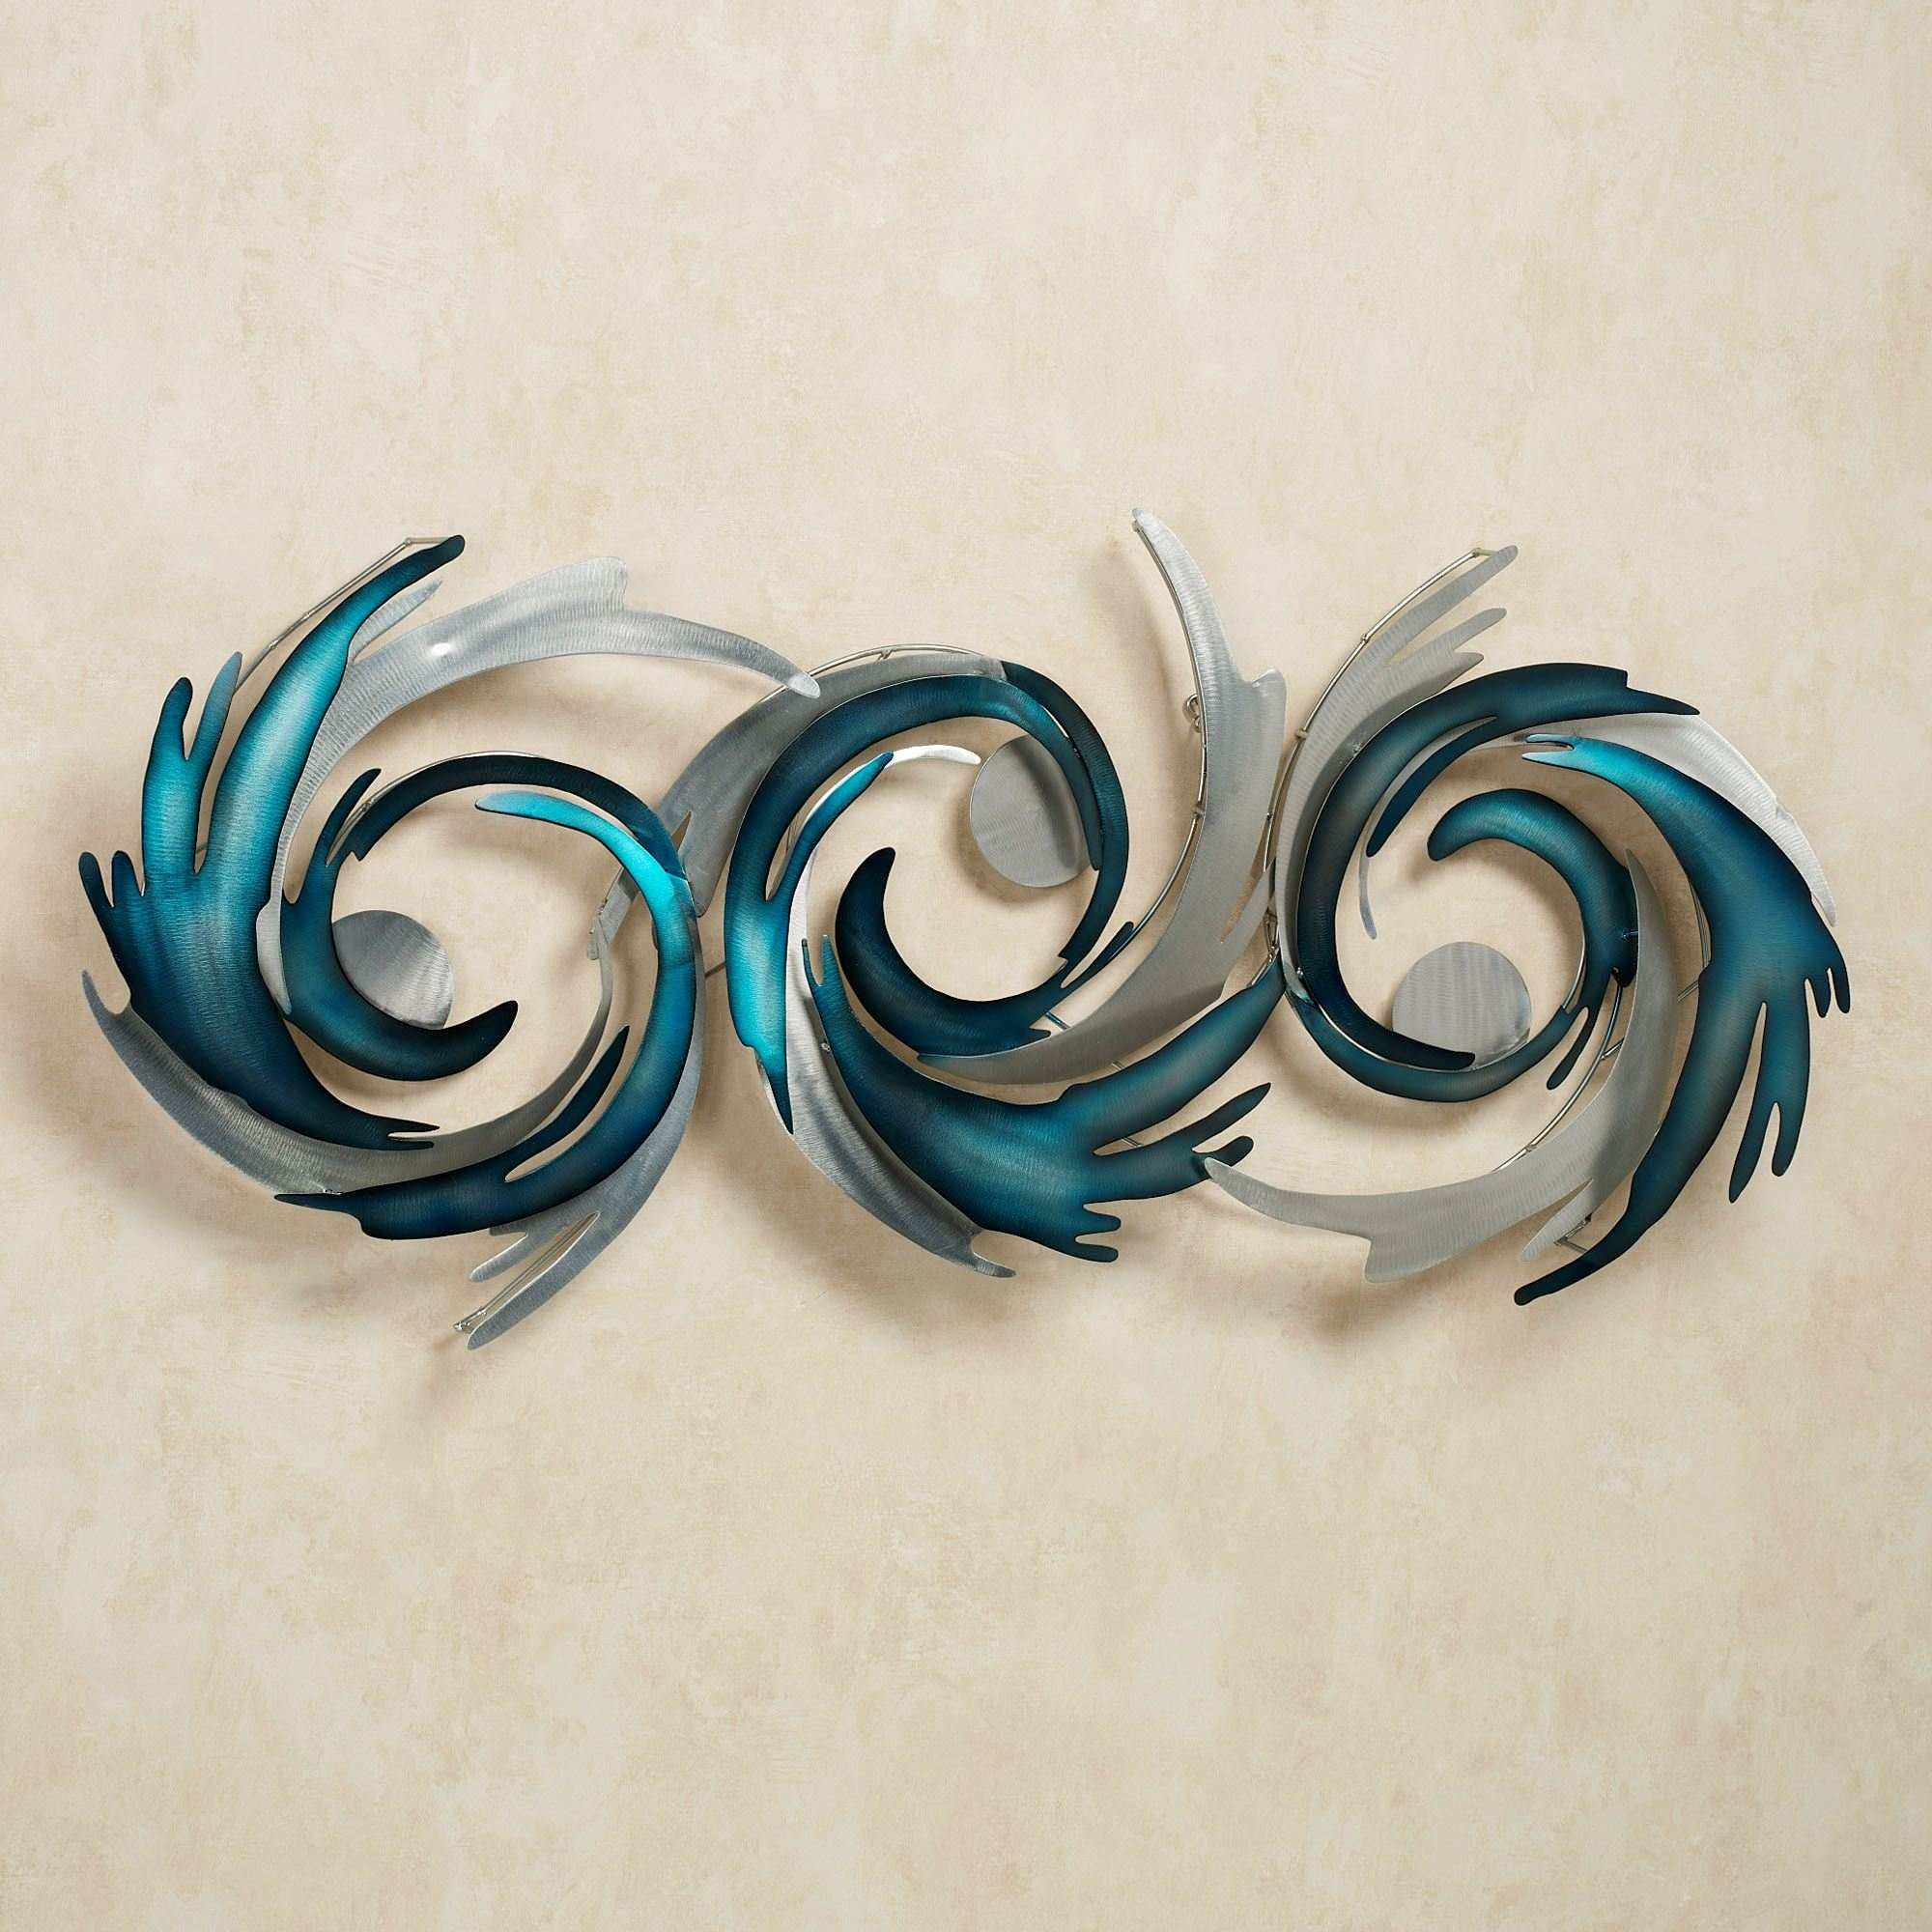 Teal Metal Wall Art Perfect Storm Metal Wall Sculpturejasonw Studios